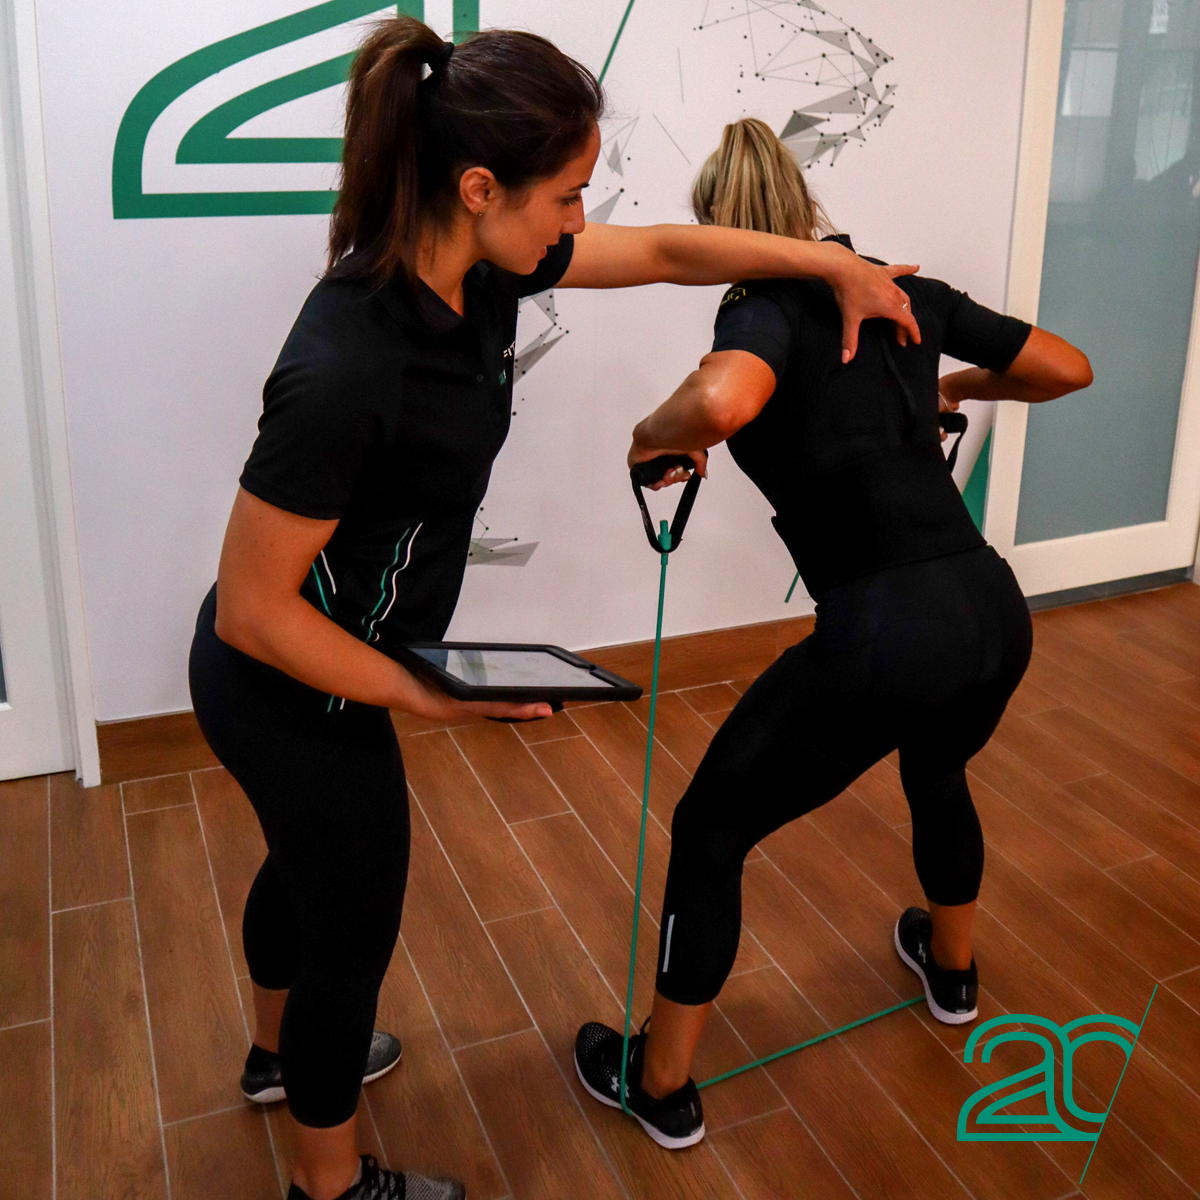 Woman Exercising with a Rubber Rope Using 20PerFit's EMS Technology